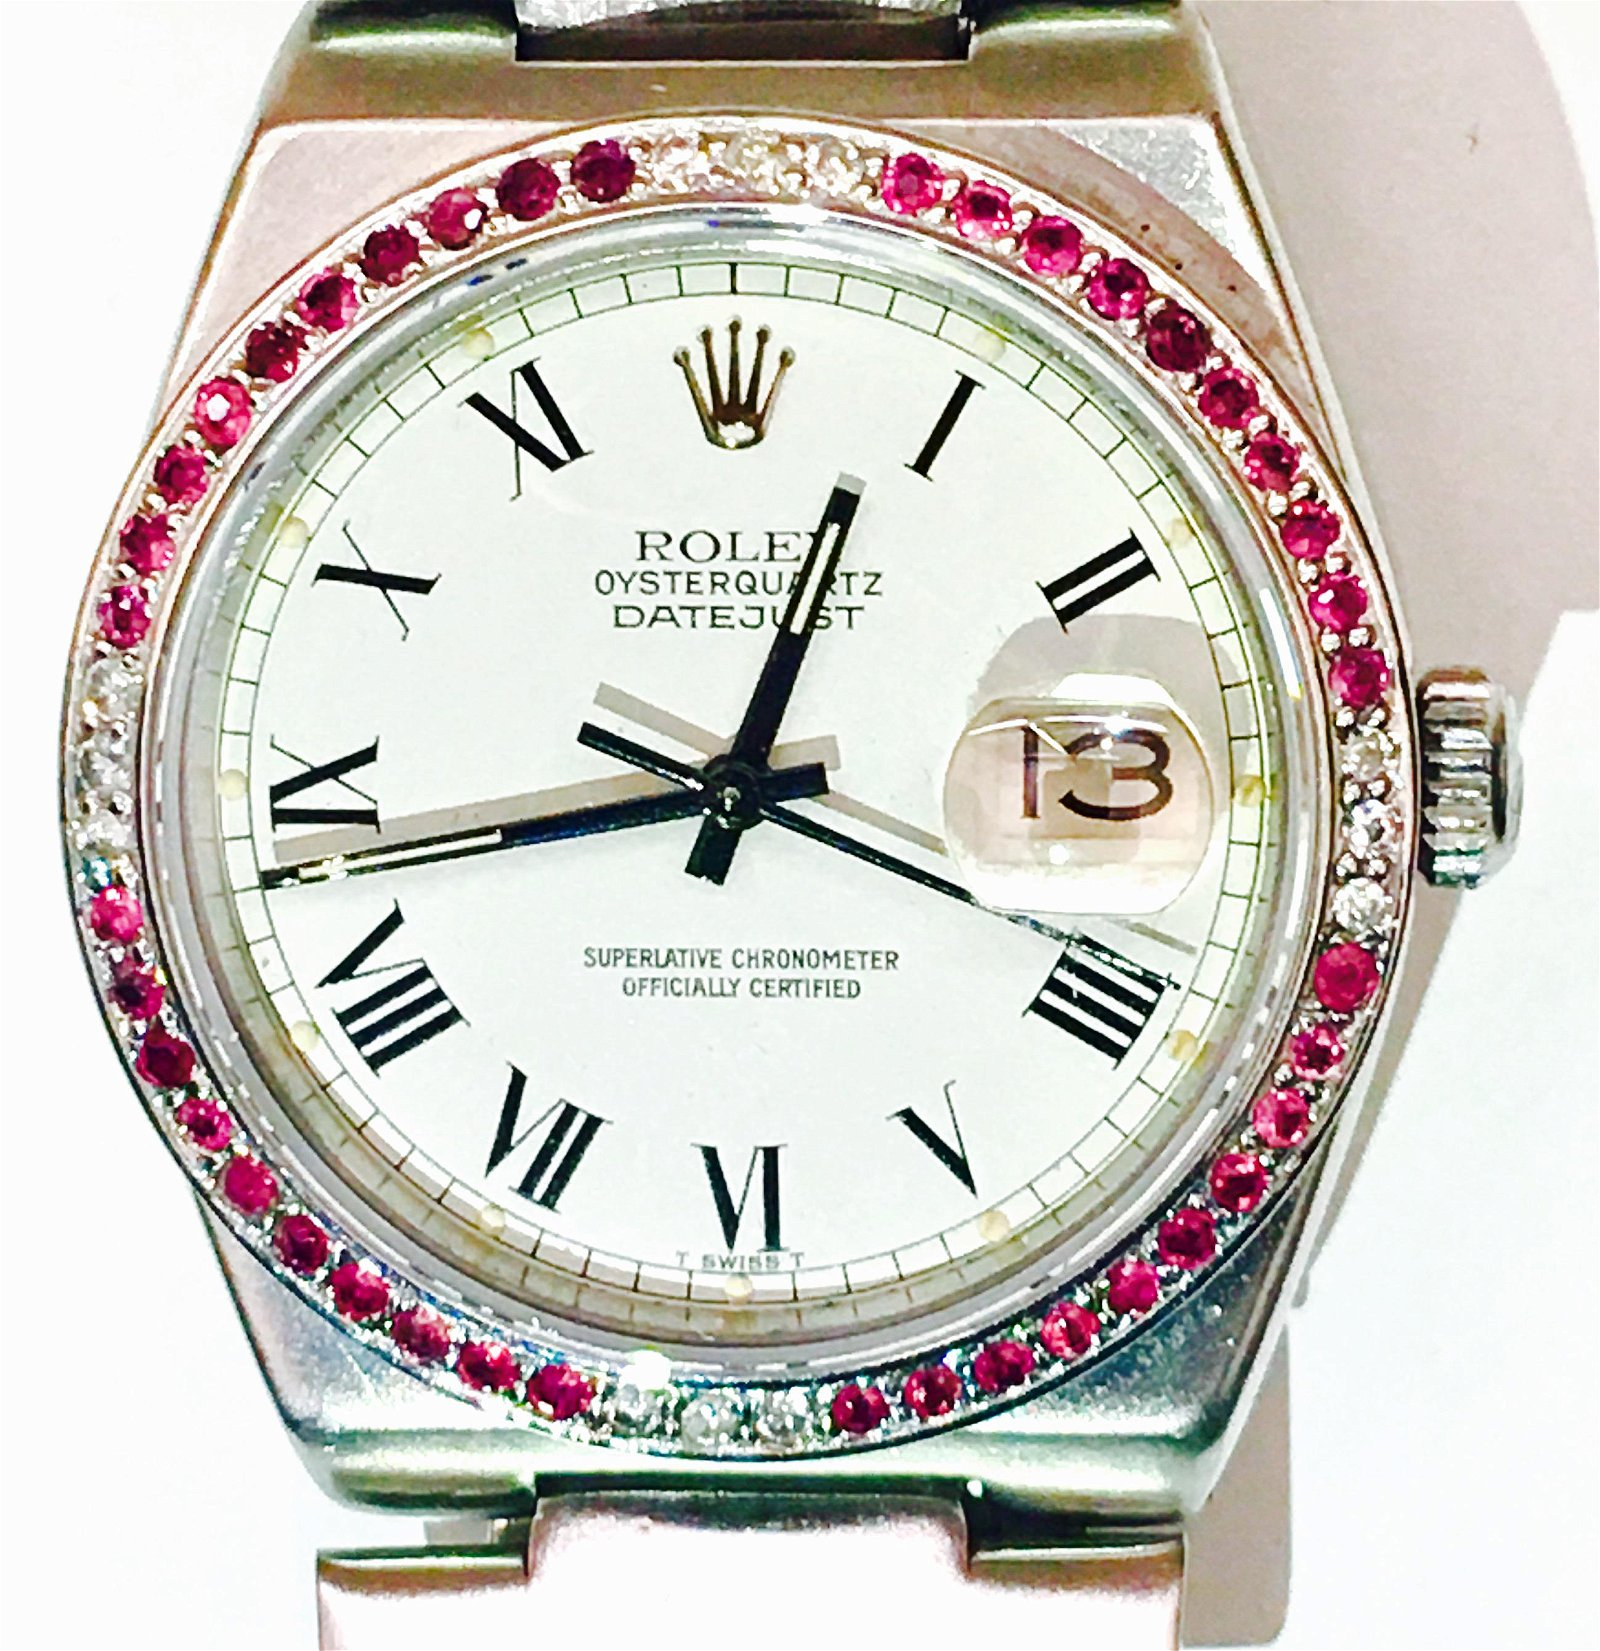 Rolex-Oysterquartz-Datejust, 36mm w/ ruby & diamonds